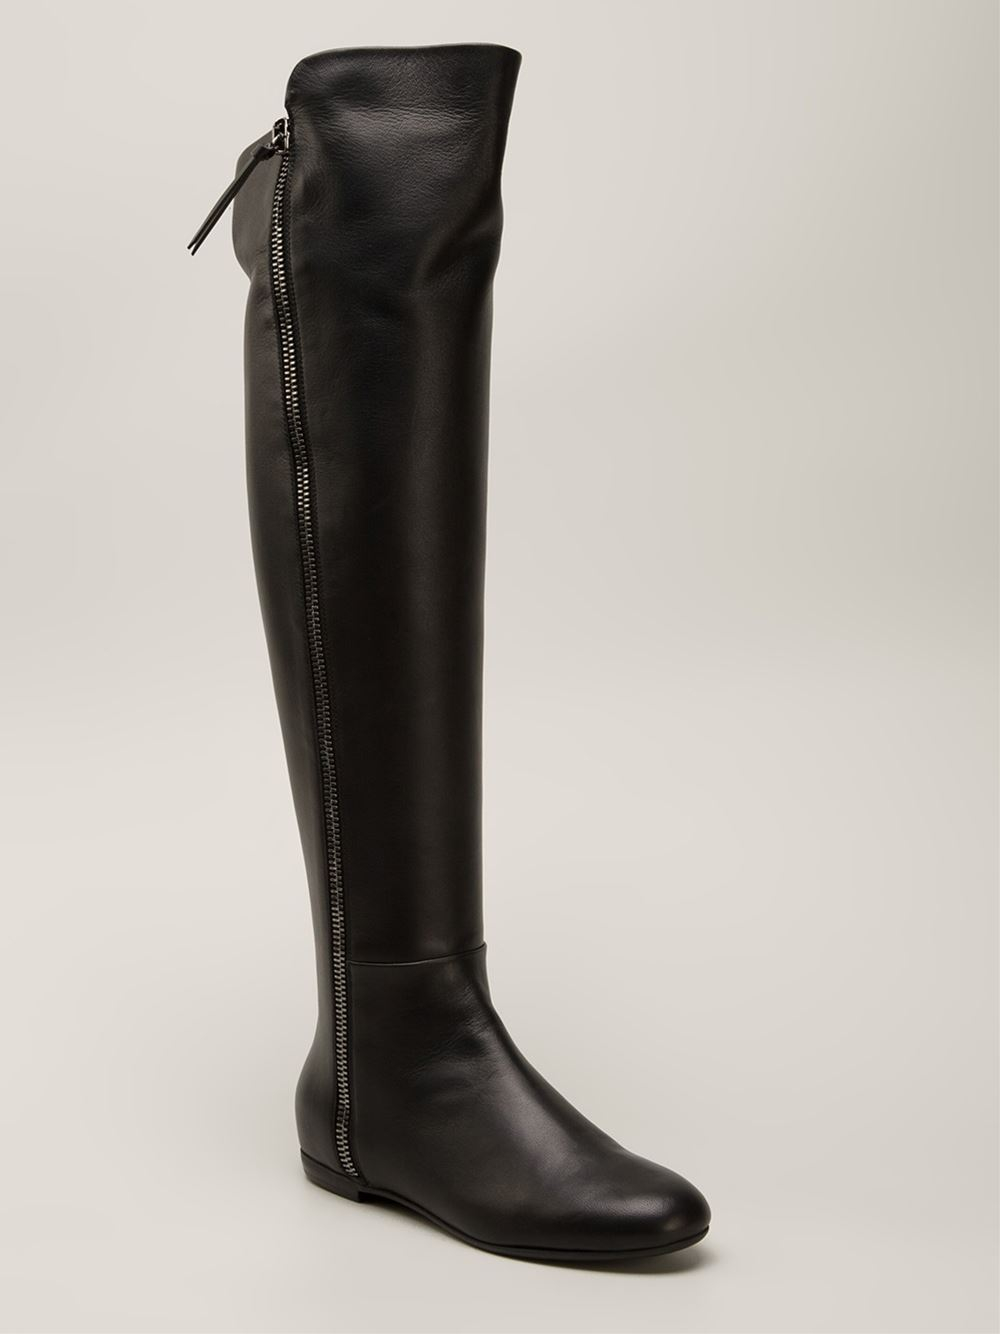 lyst giuseppe zanotti over the knee boots in black rh lyst com